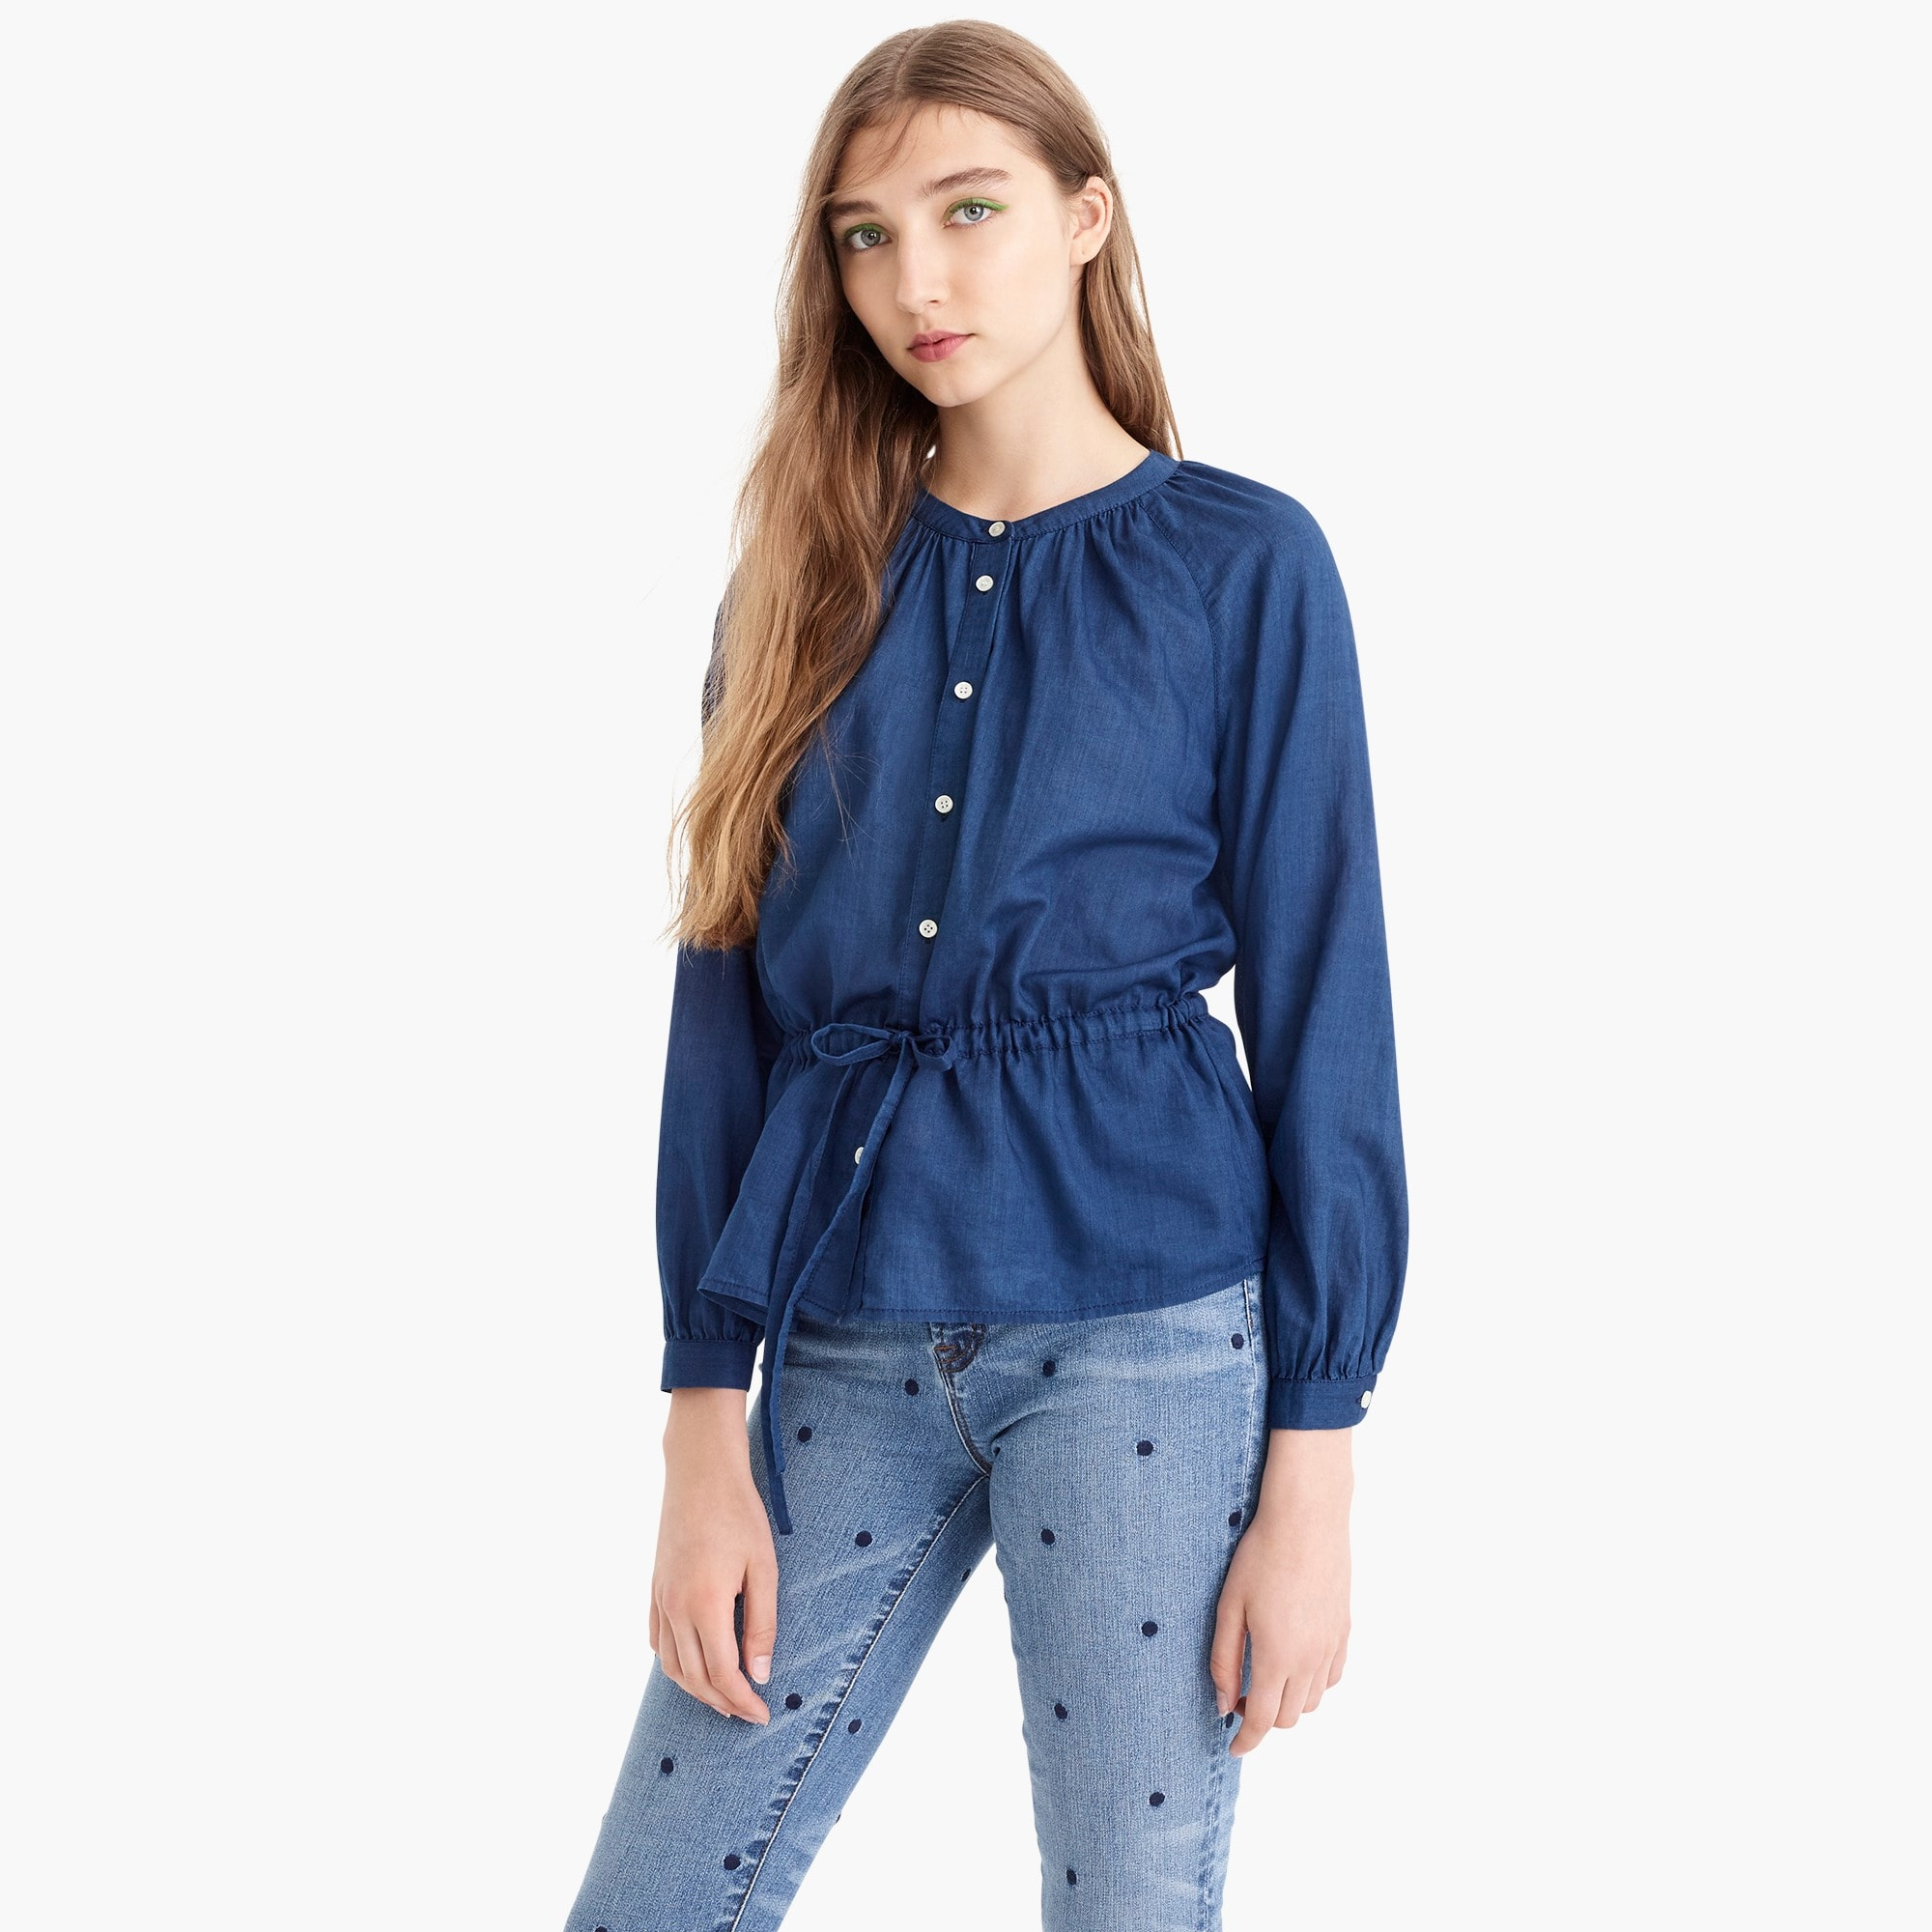 Image 3 for Tall tie-waist top in indigo gauze